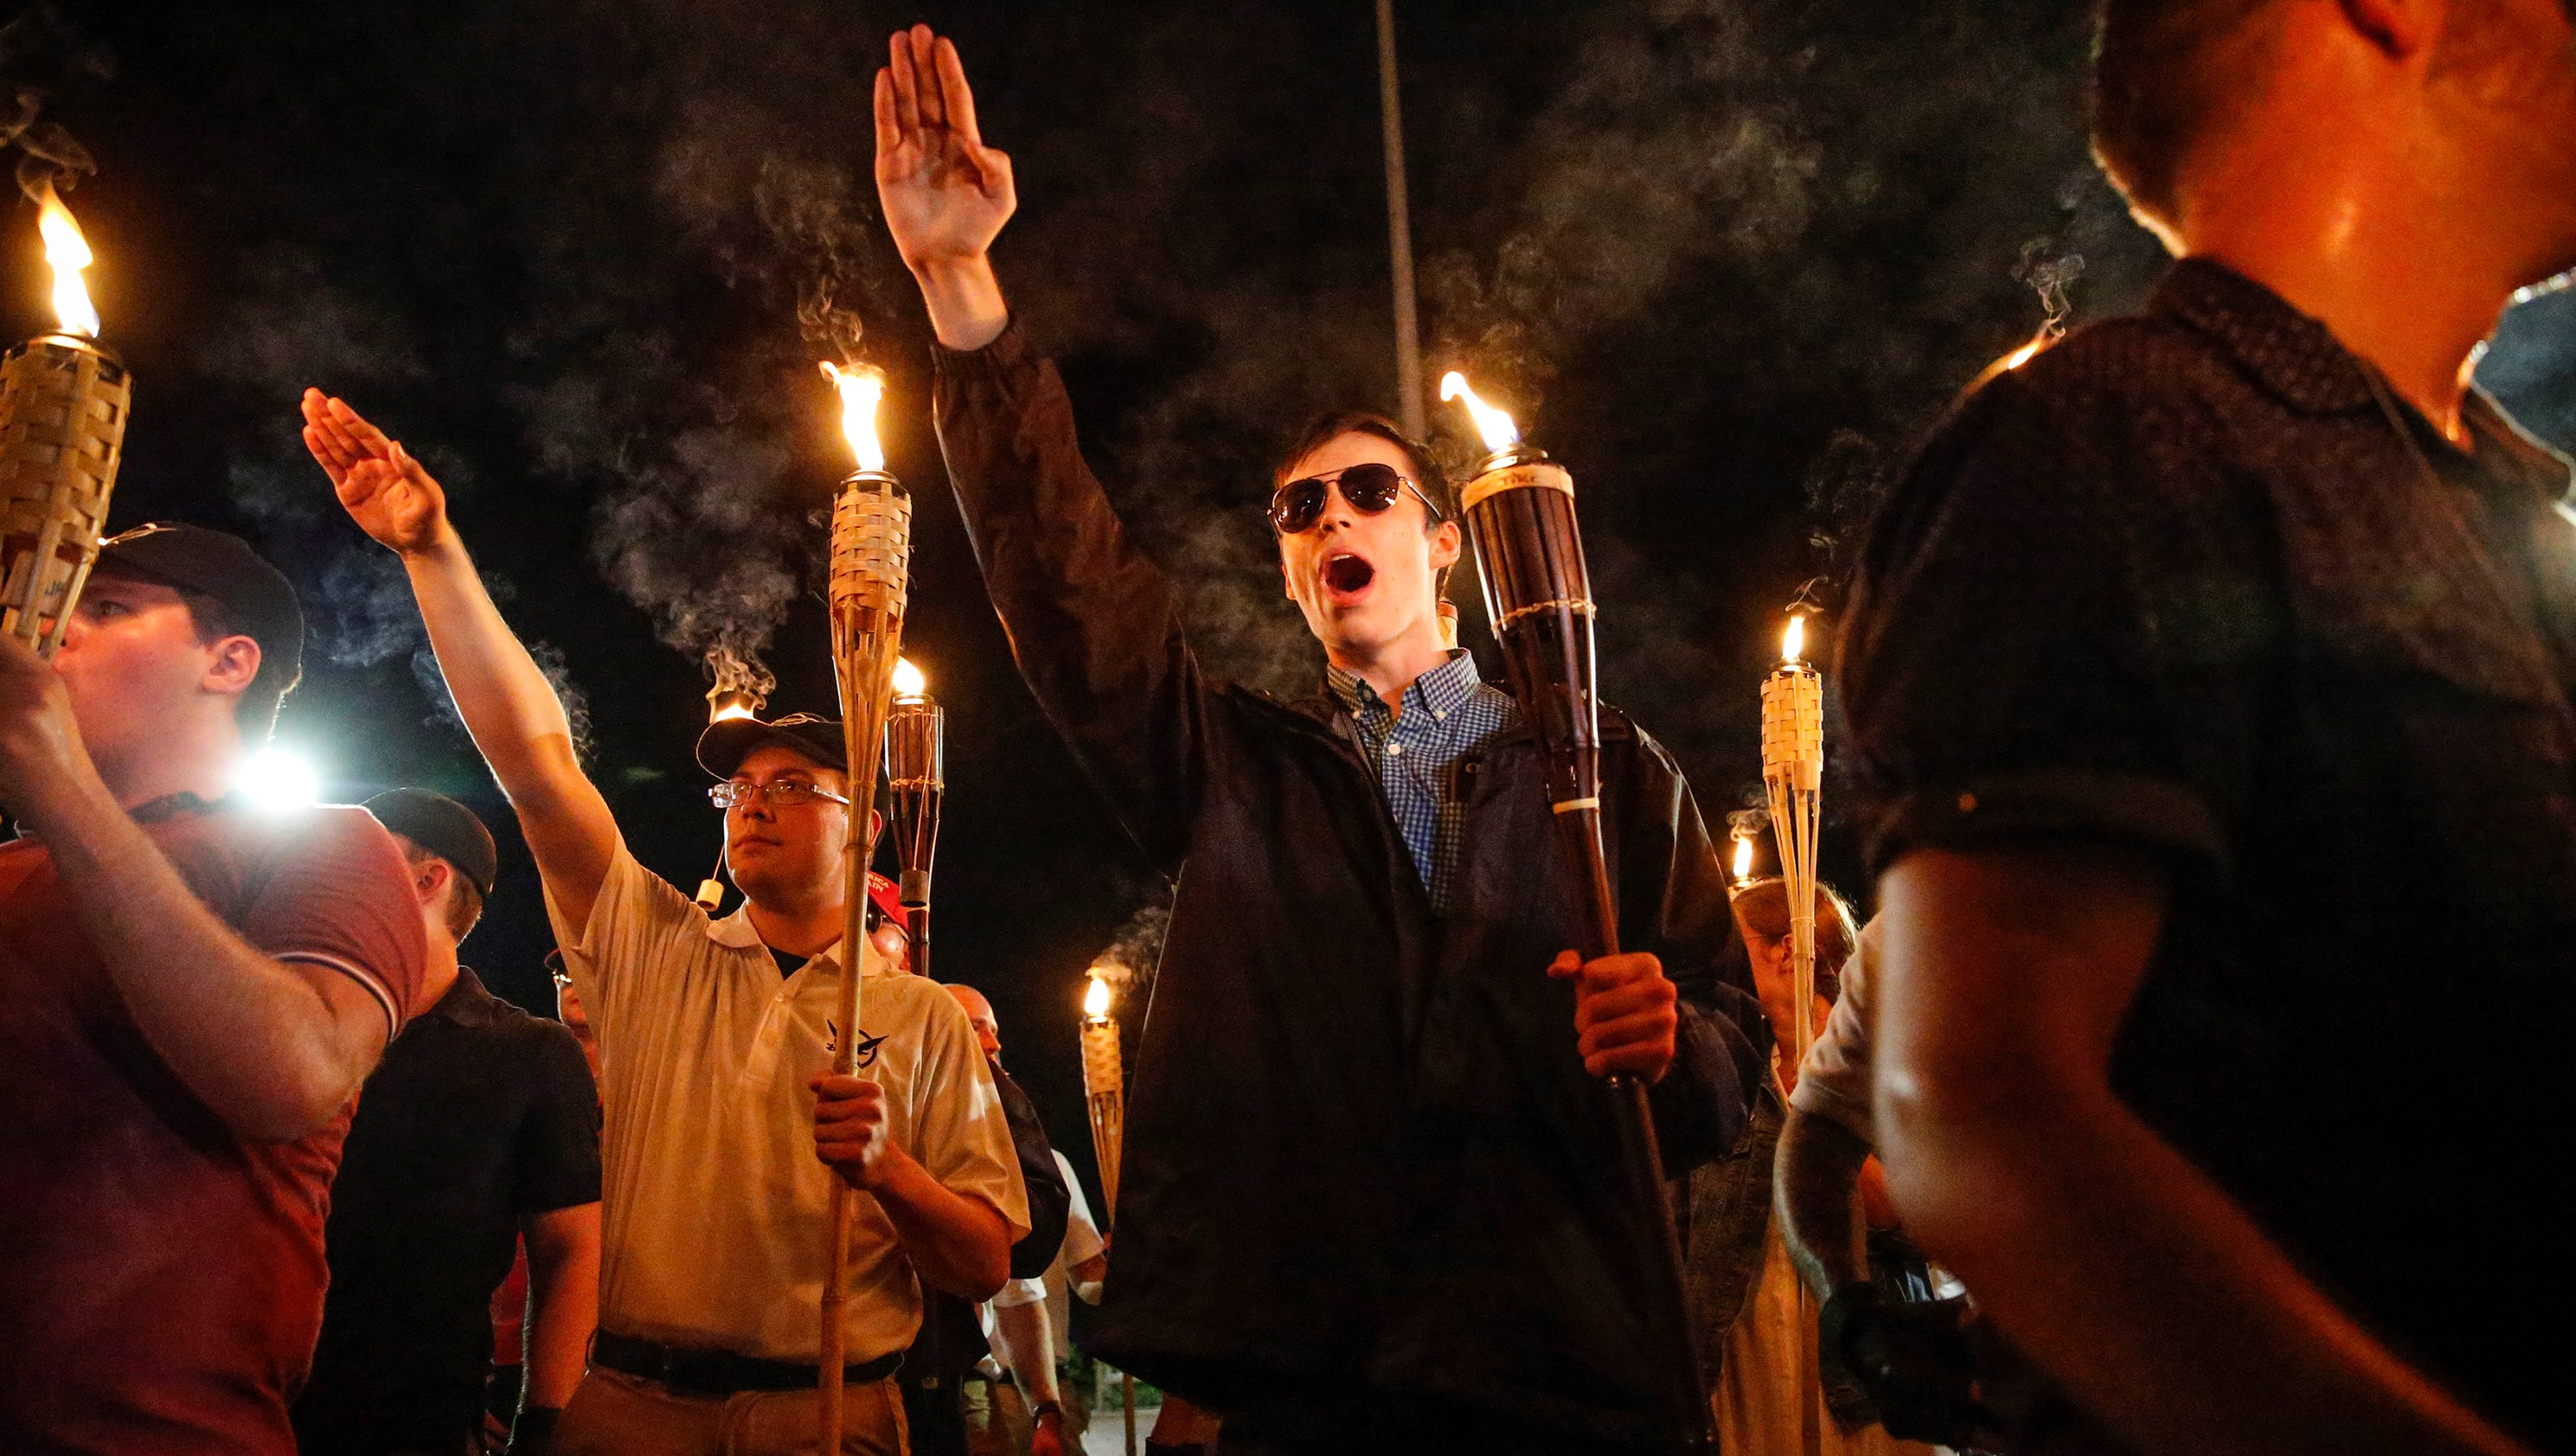 Alt-right protesters rally in Charlottesville